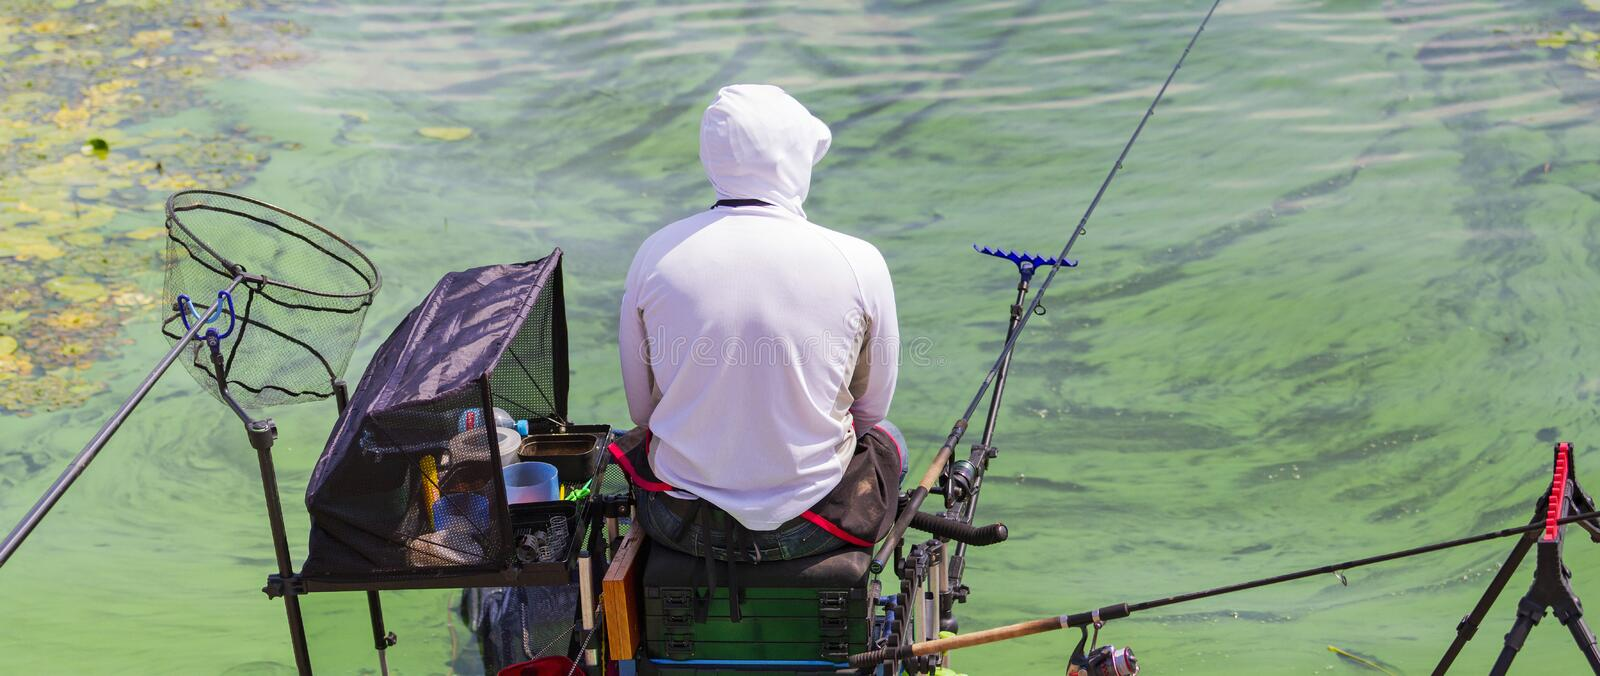 Man fishes in the river on a fishing tournament stock photography